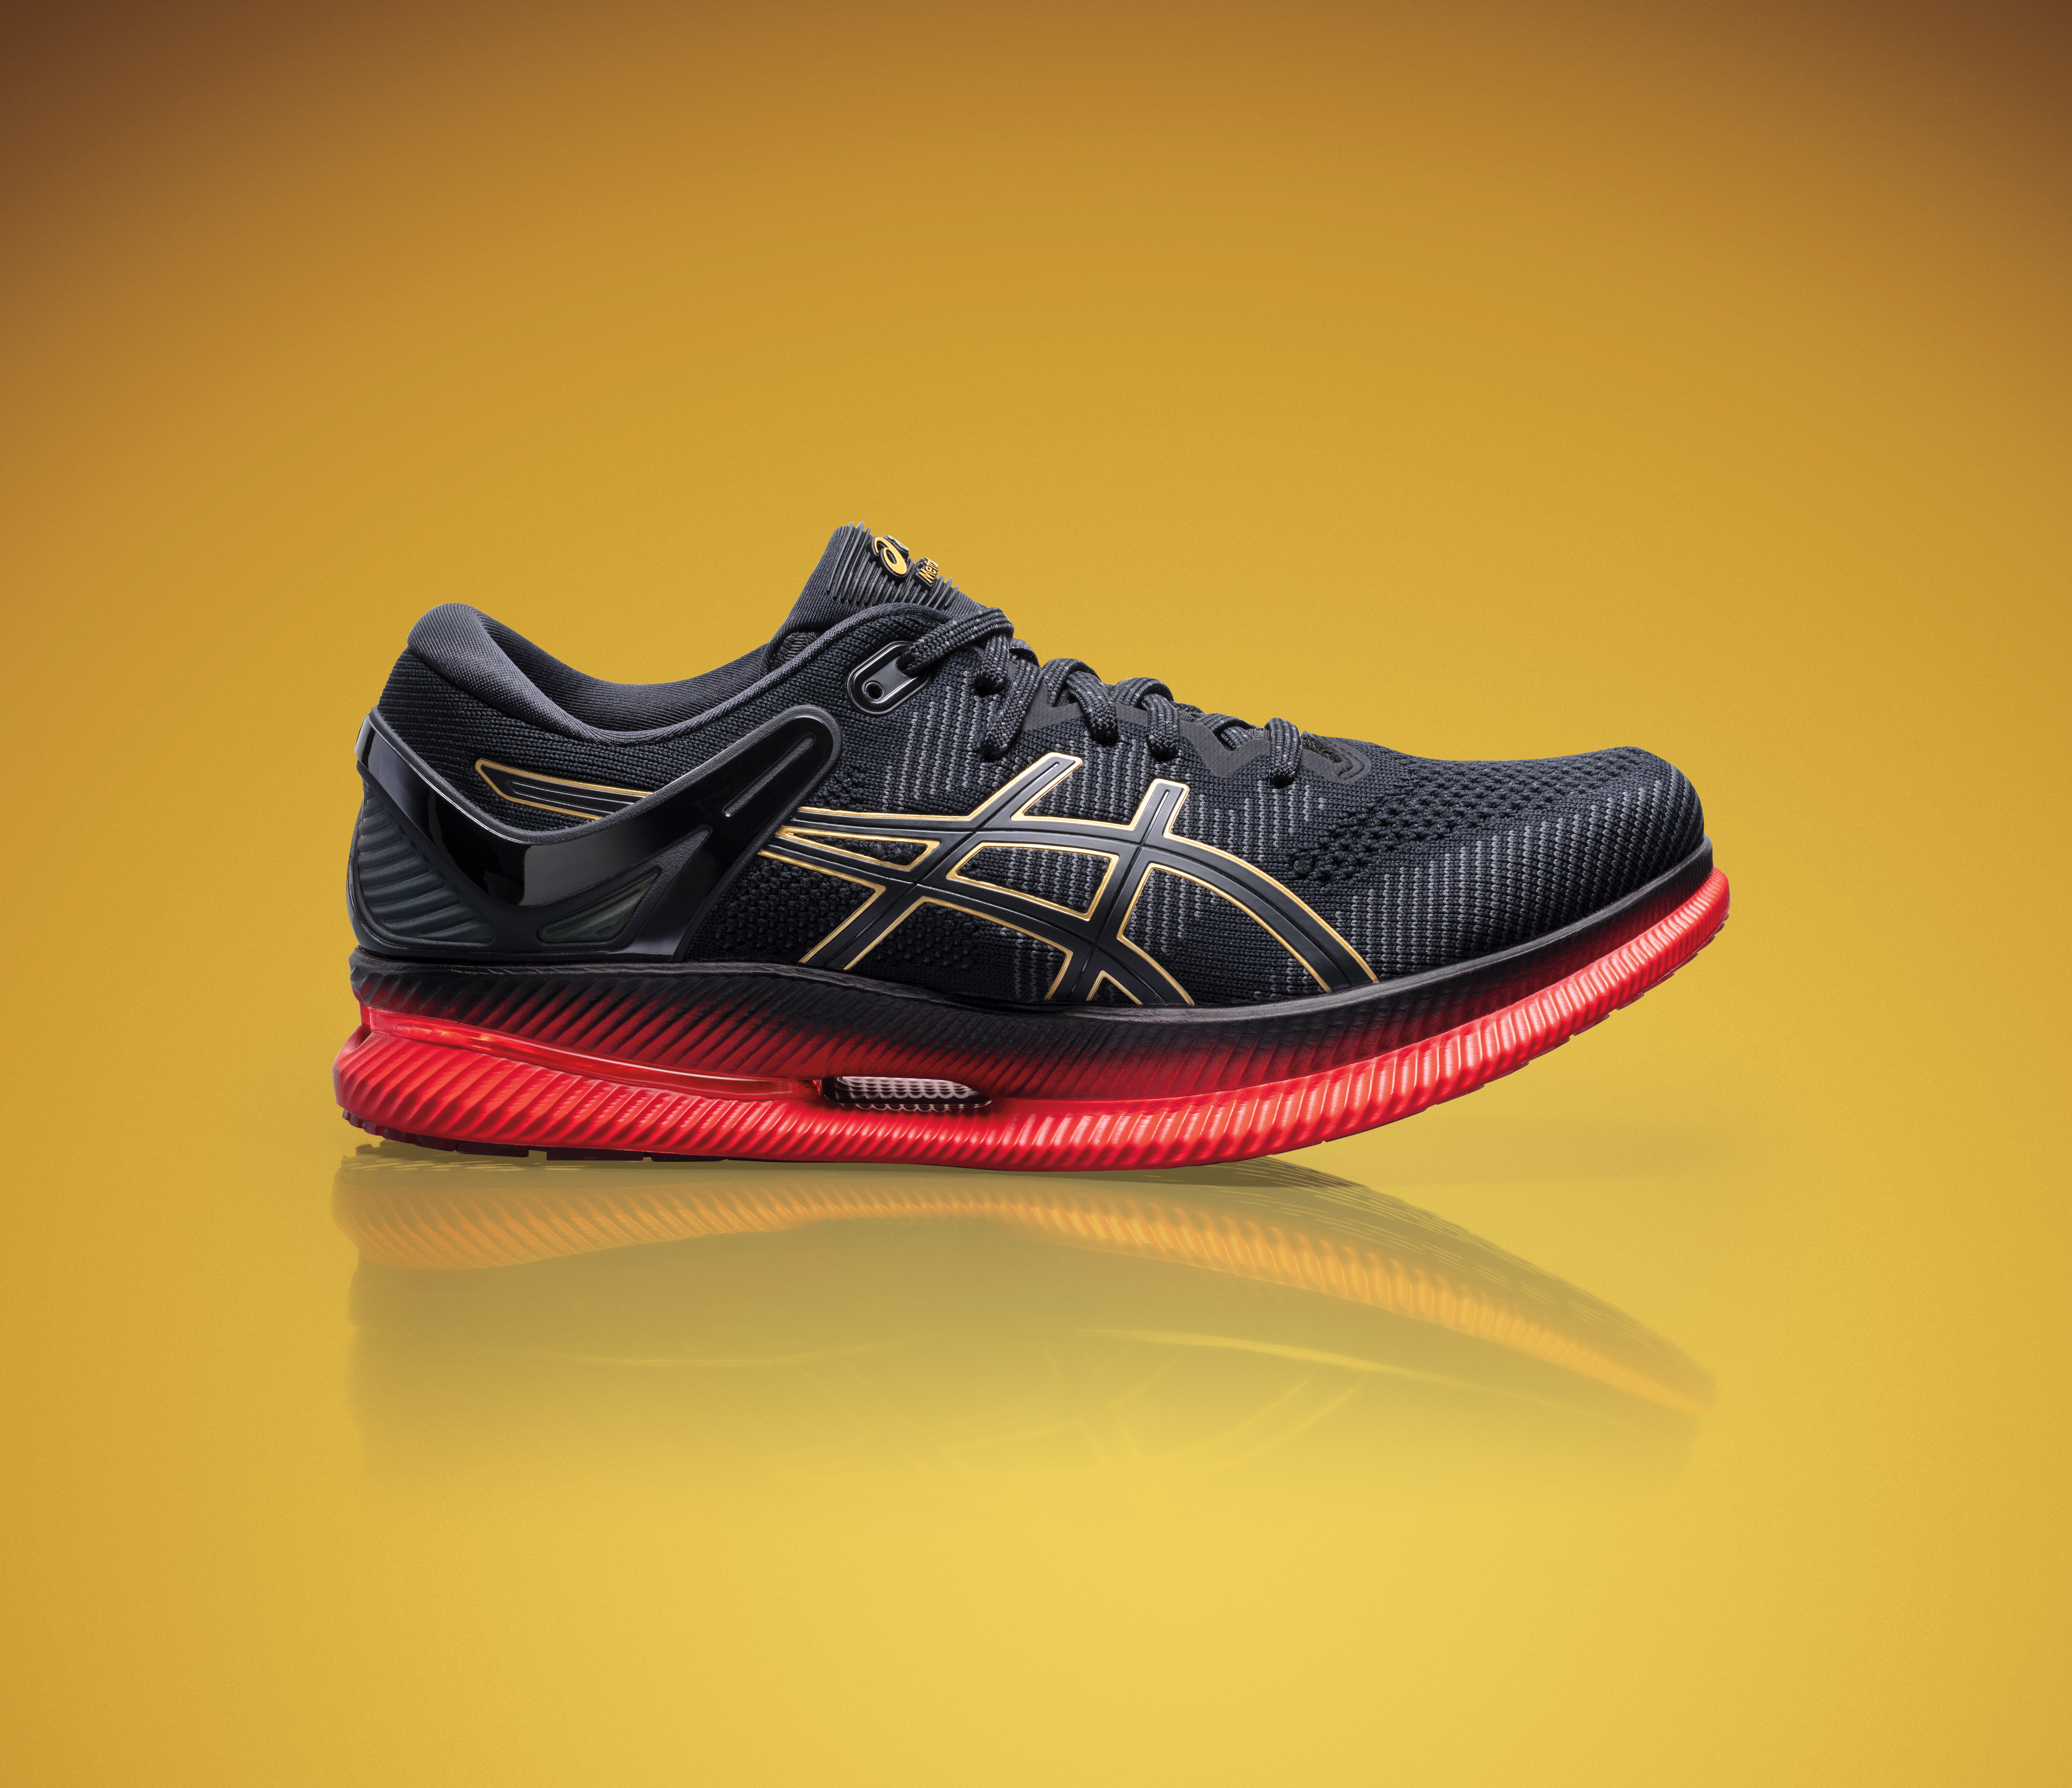 Asics' MetaRide running shoe.